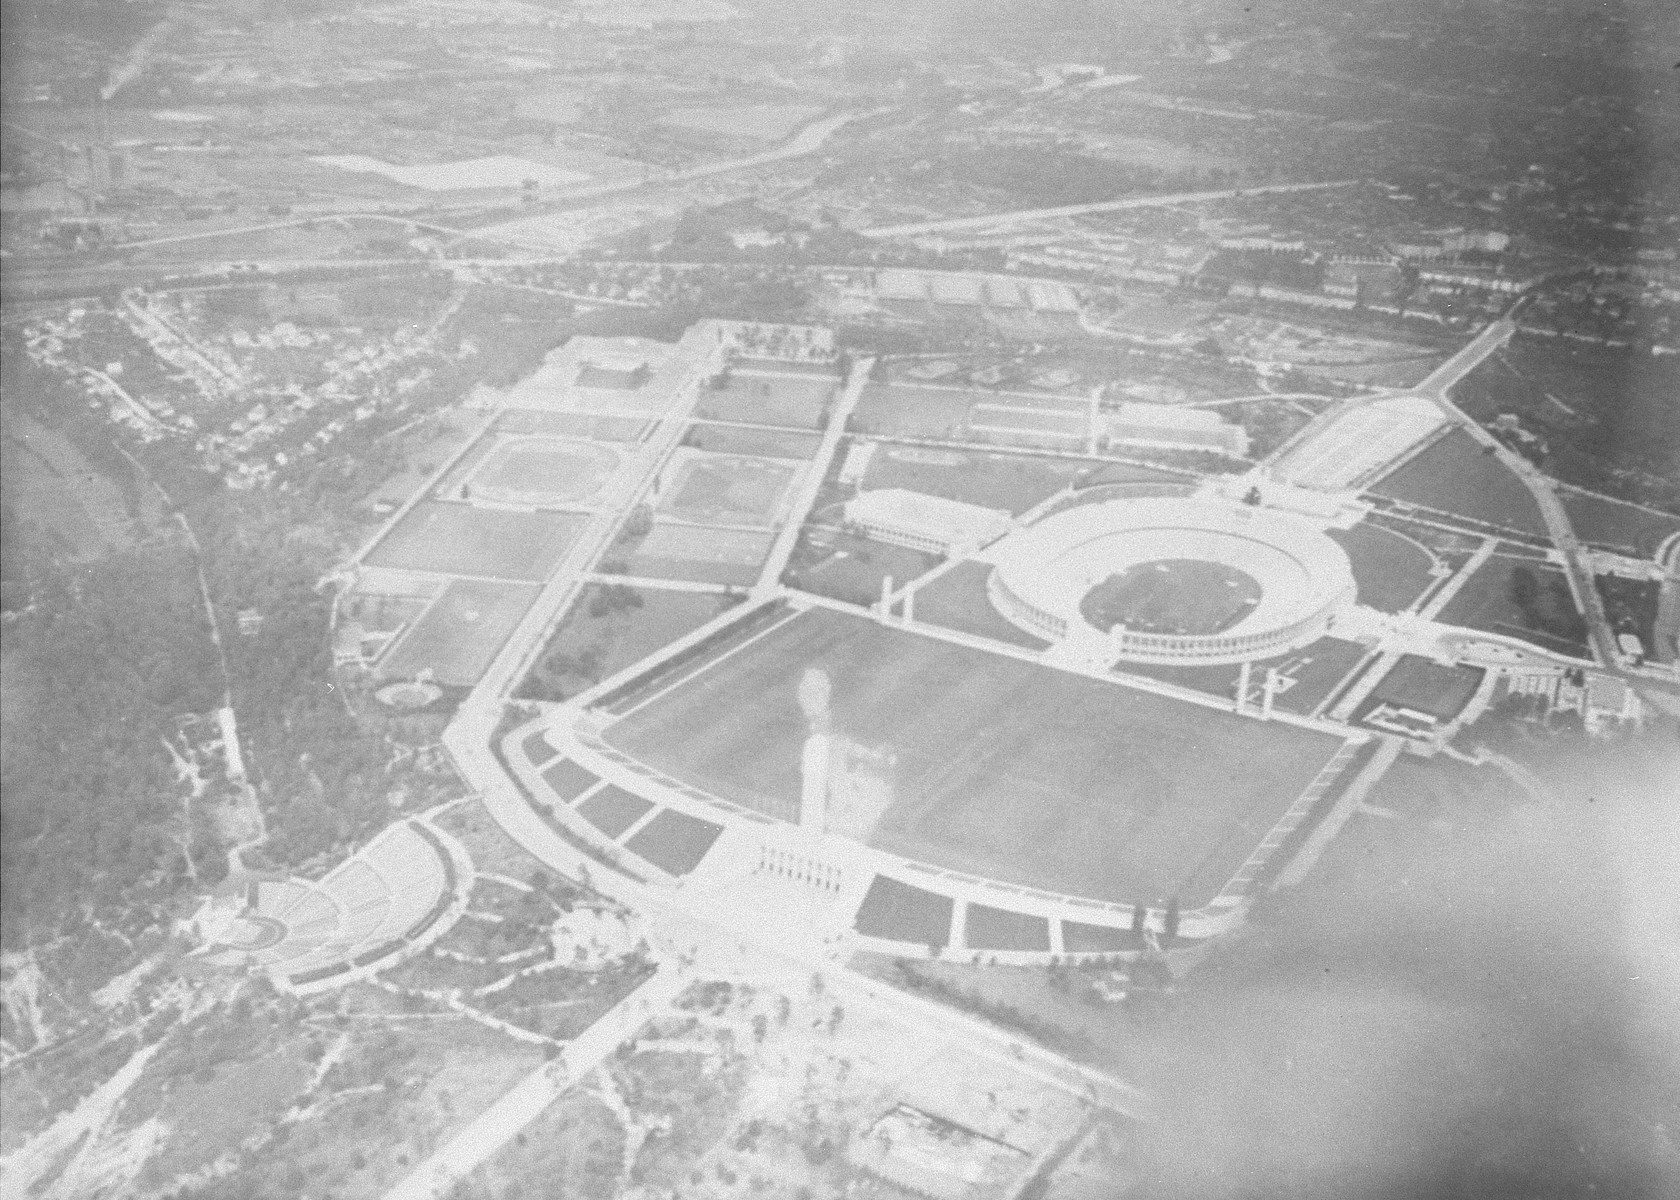 The Olympic stadium and complex in Berlin, site of the 11th Olympiad.